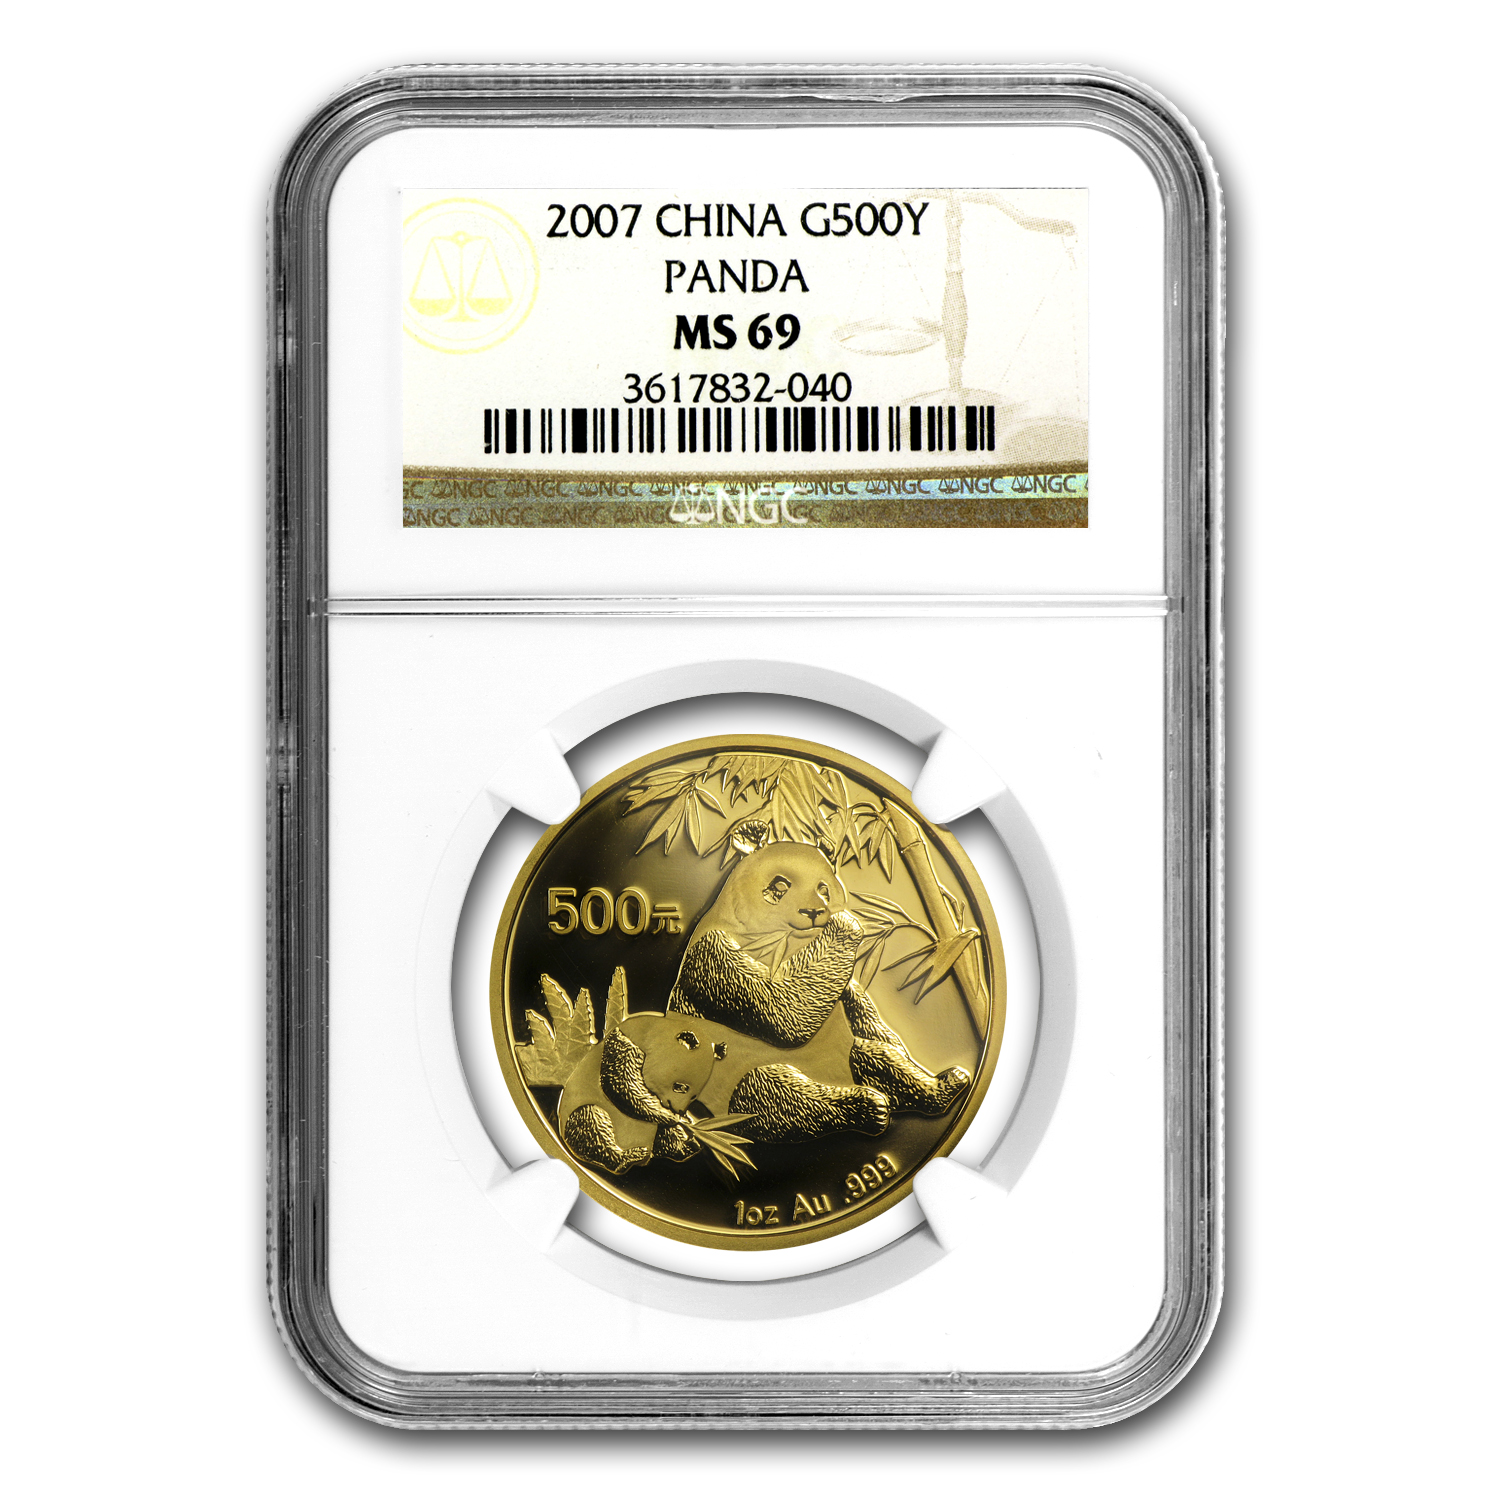 2007 1 oz Gold Chinese Panda MS-69 NGC